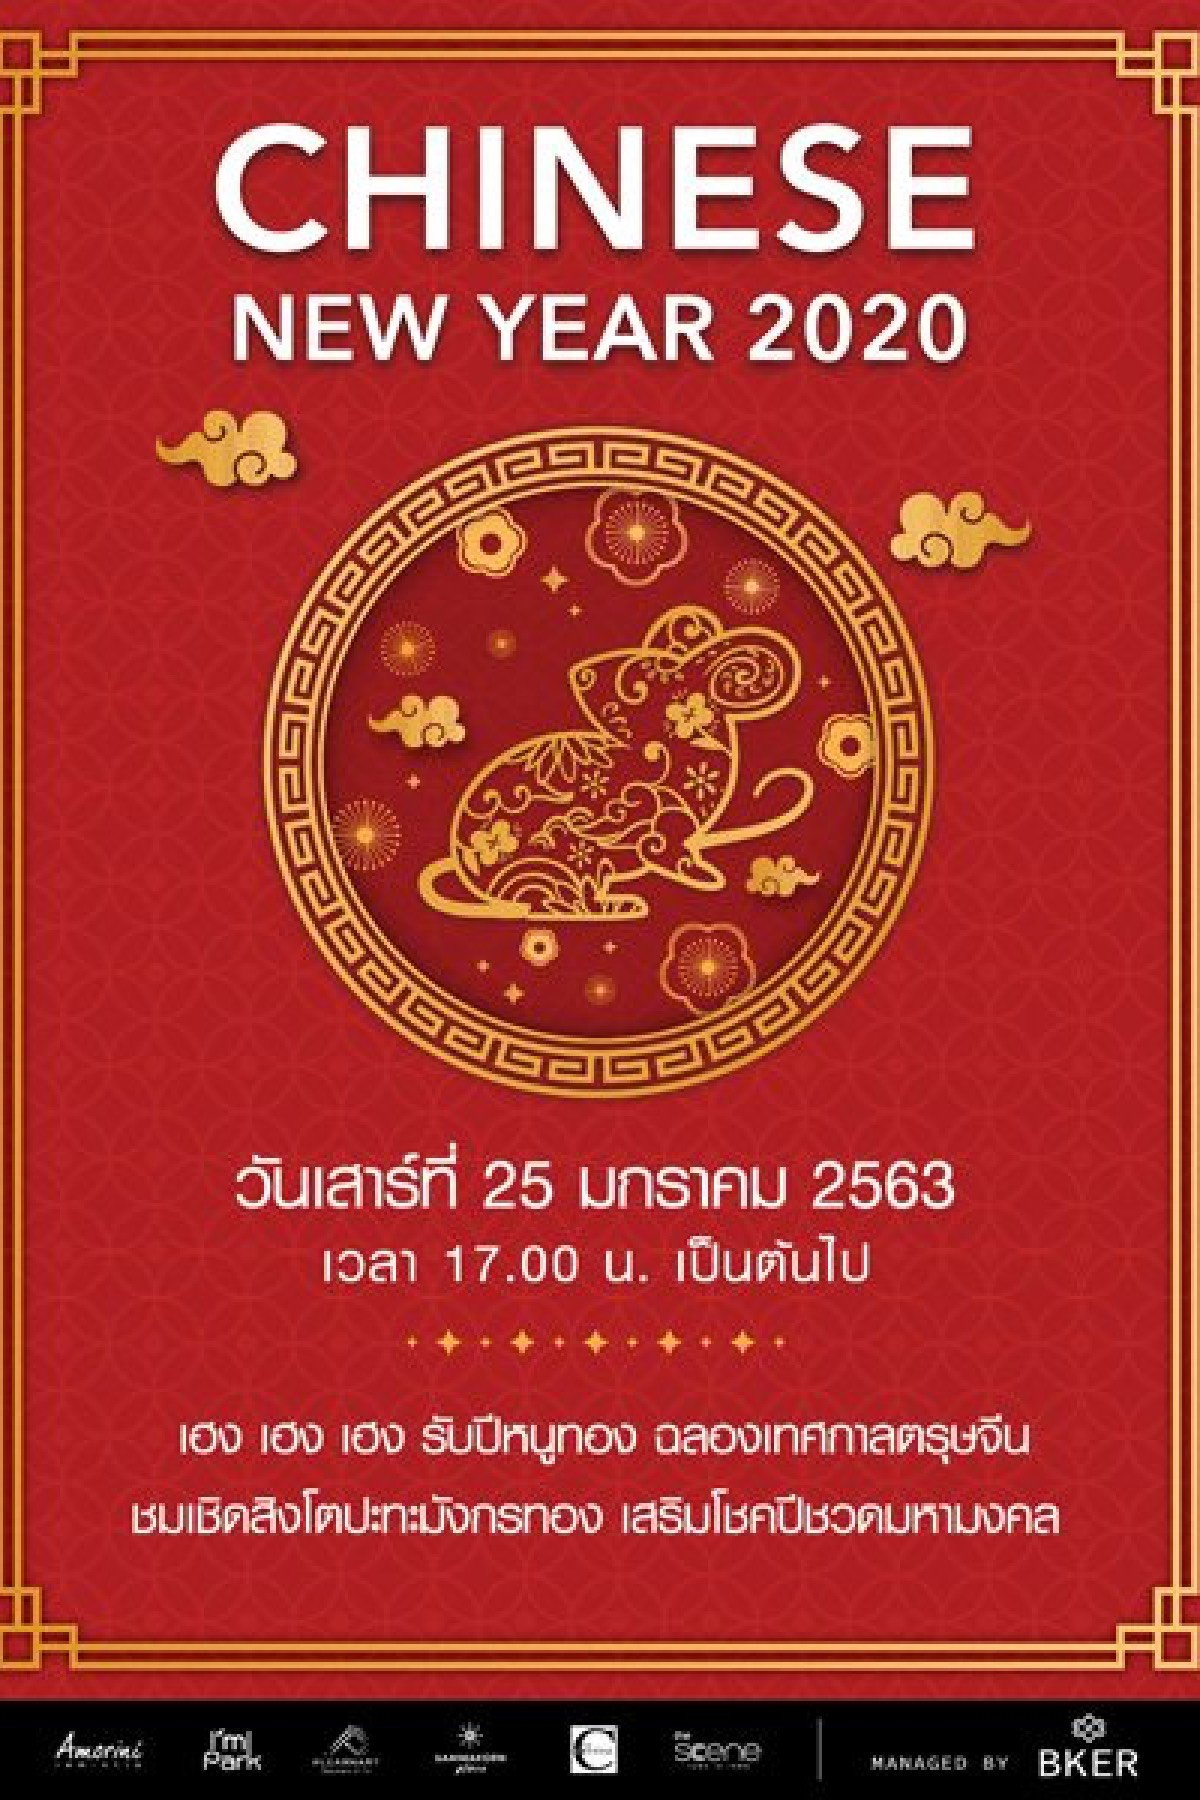 BKER would like to invite all guests to CHINESE NEW YEAR 2020